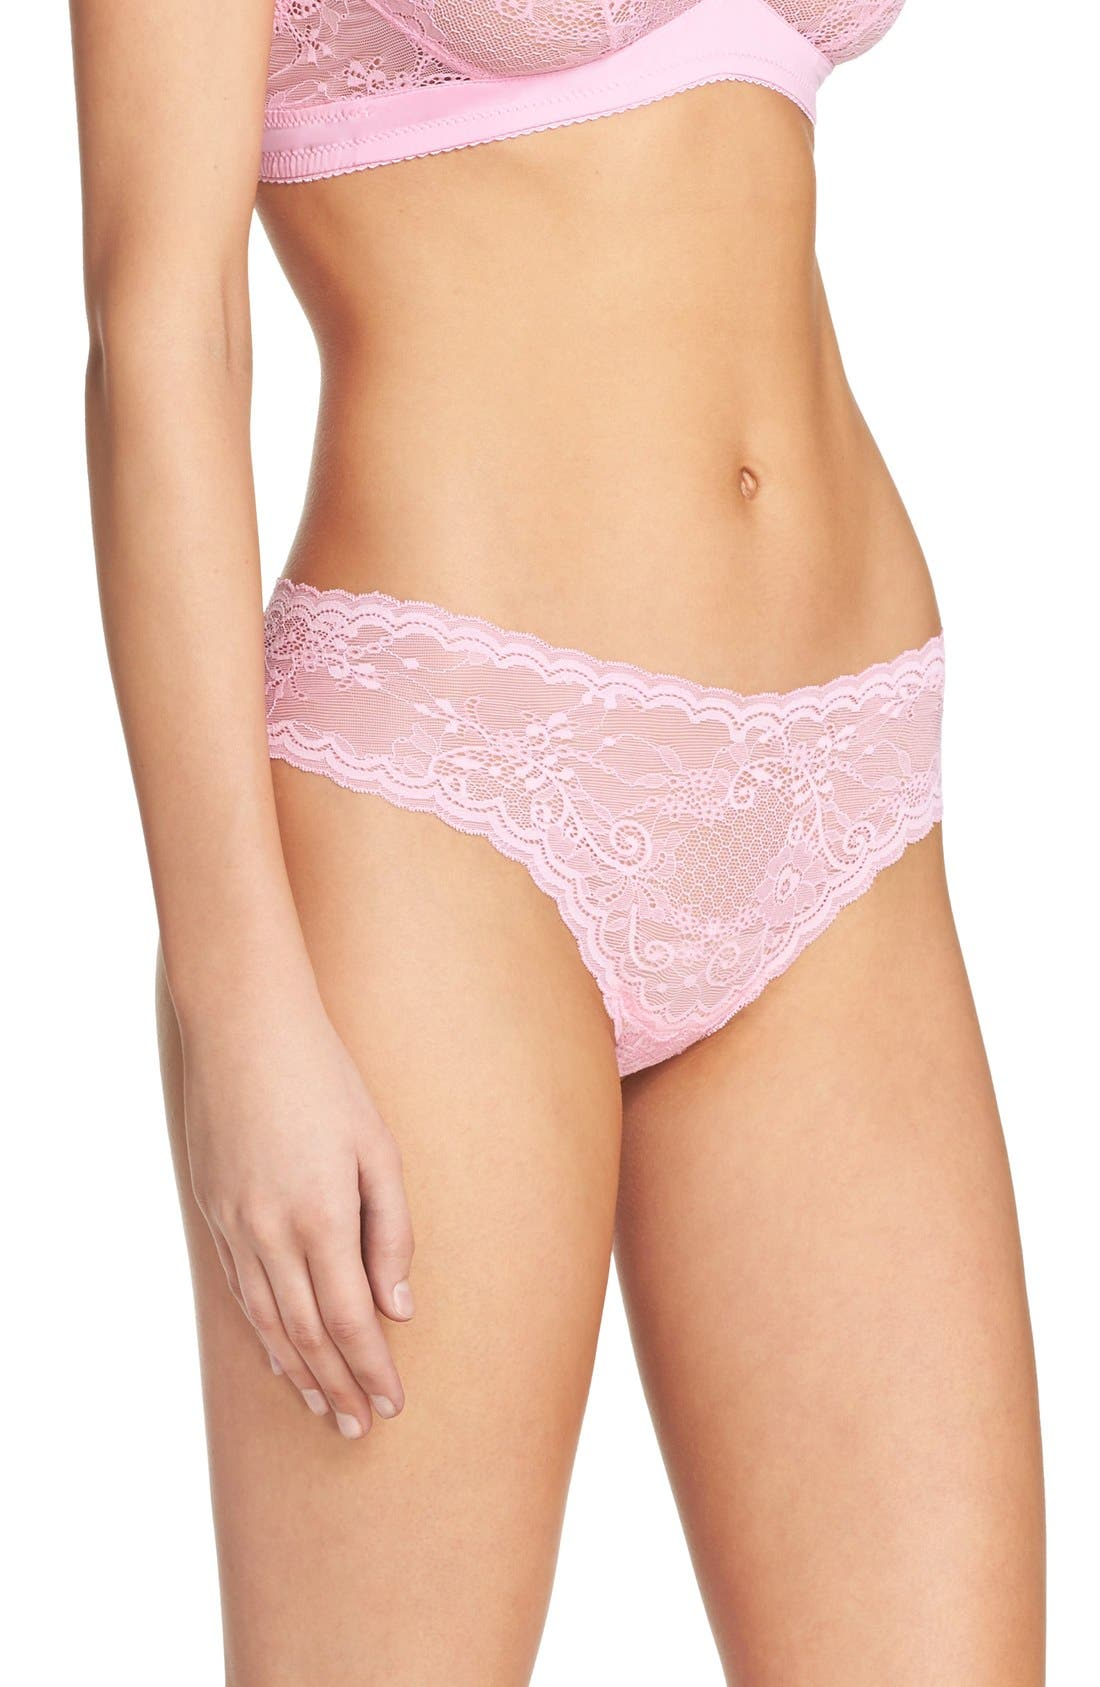 'Trenta' Low Rise Lace Thong,                             Alternate thumbnail 179, color,